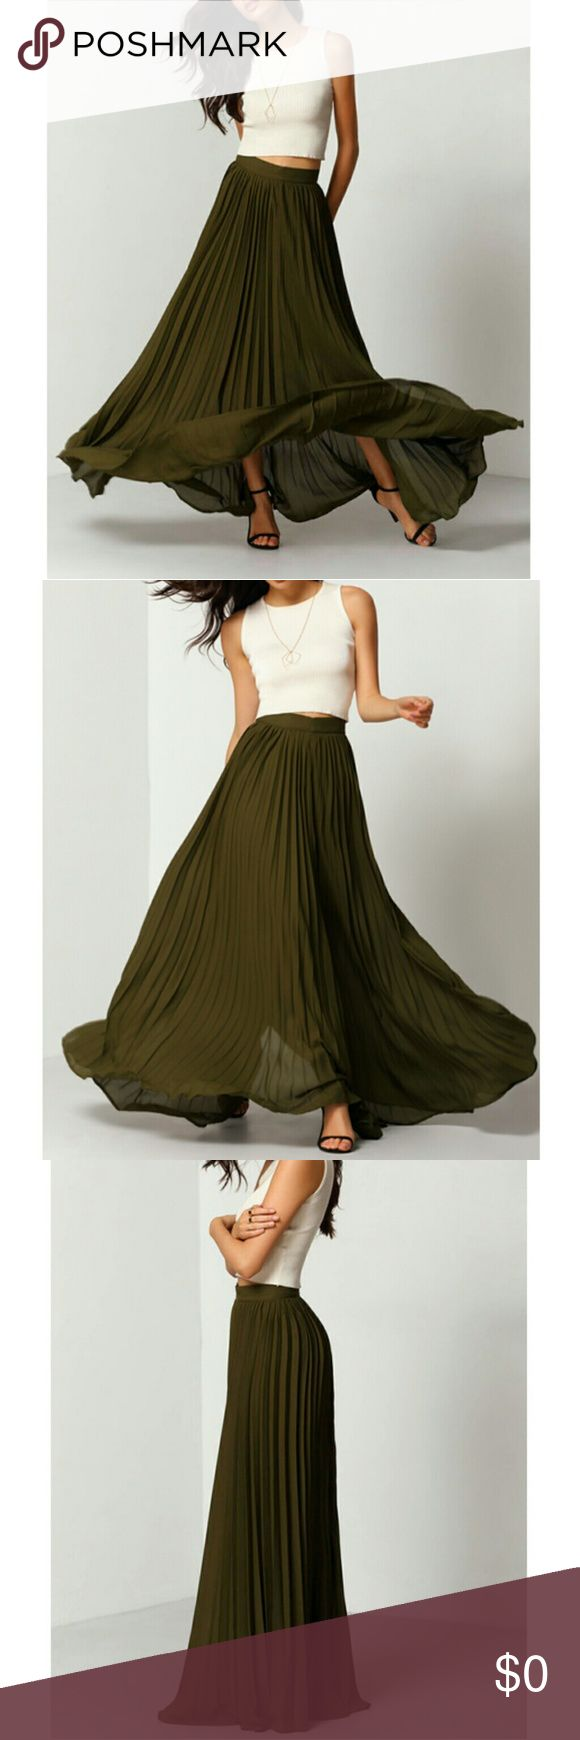 4TH OF JULY SALE ARRIVAL OLIVE PLEATED MAXI SKIRT.  -FABRIC/SIZING/ SEE LAST IMAGE! -ACCEPTING REASONABLE OFFERS AND BUNDLE DISCOUNTS AVAILABLE! Skirts Maxi